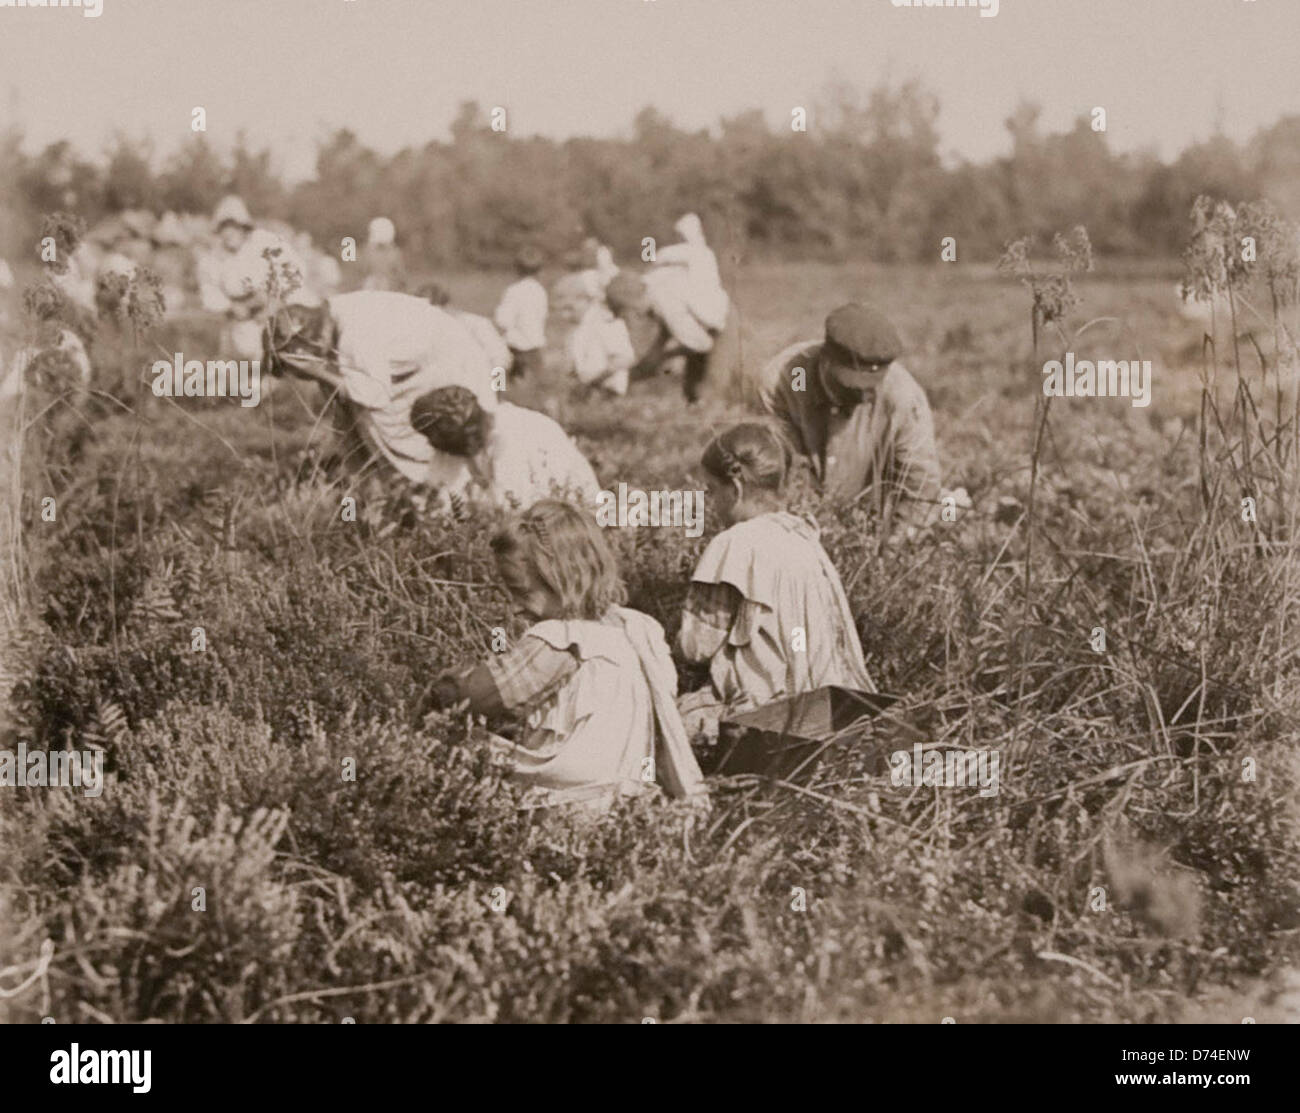 Children Picking Cranberries, Pemberton,New Jersey - September - Stock Image